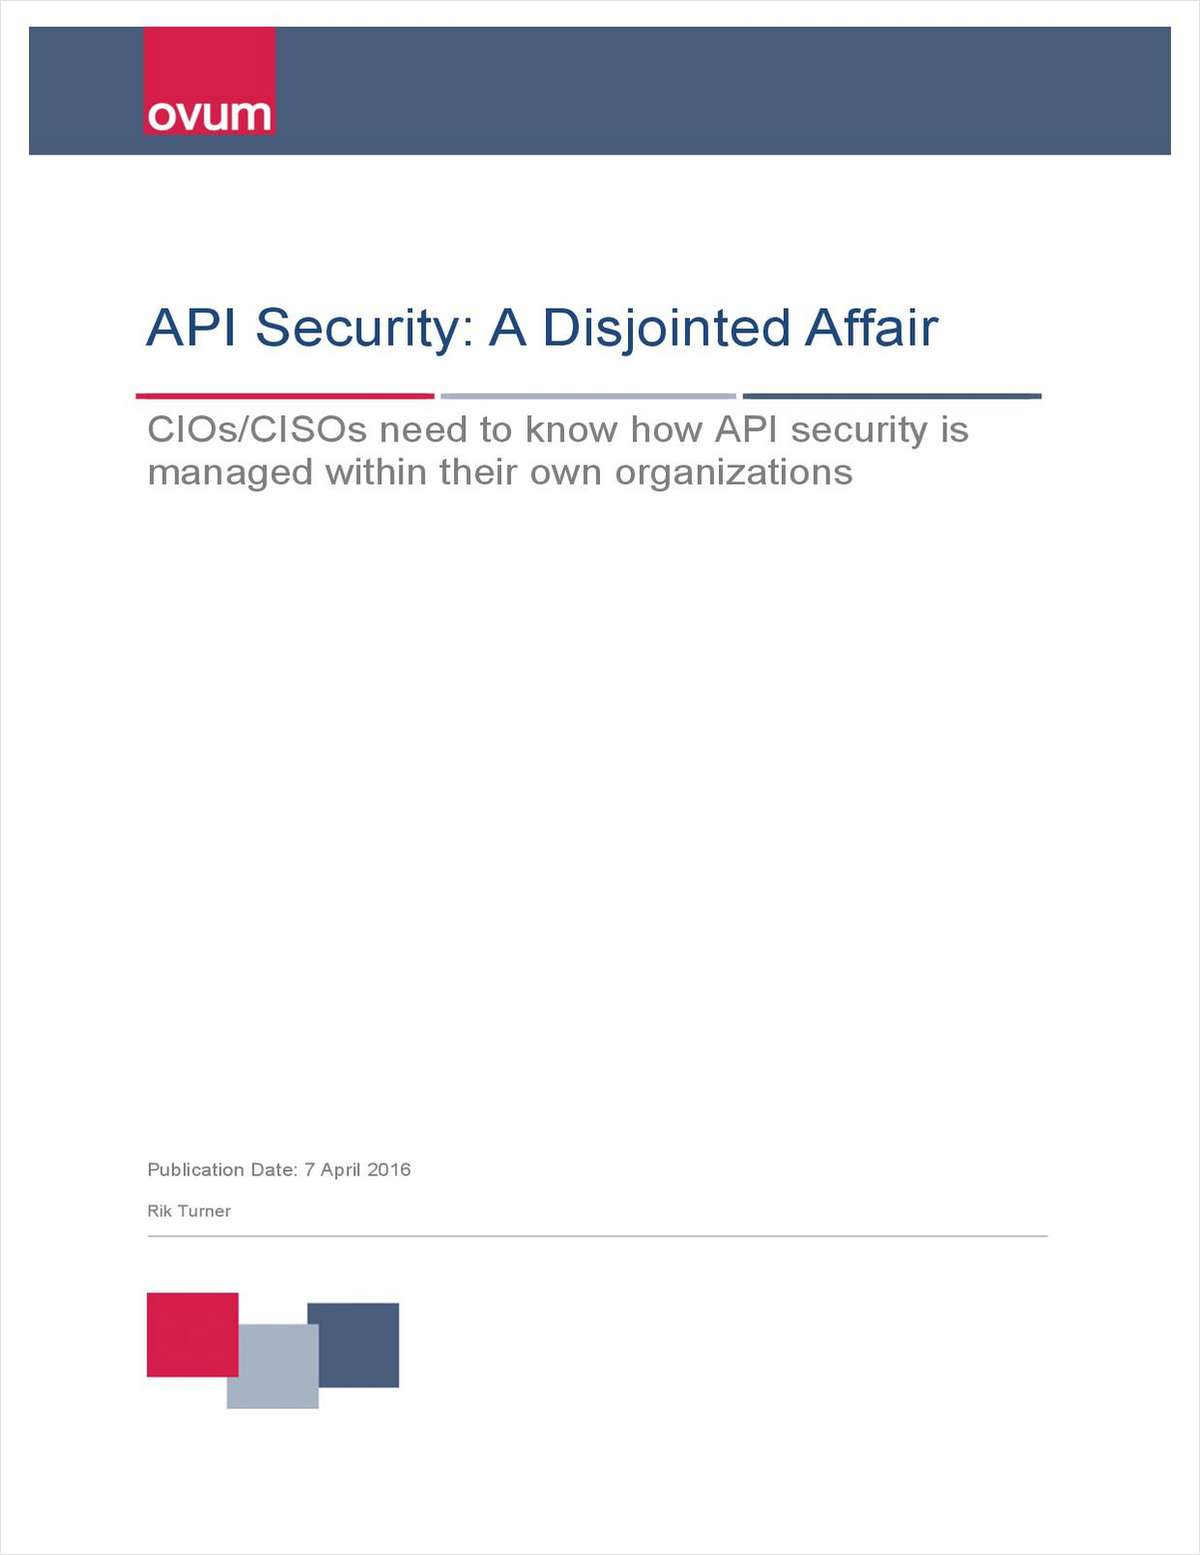 API Security: A Disjointed Affair